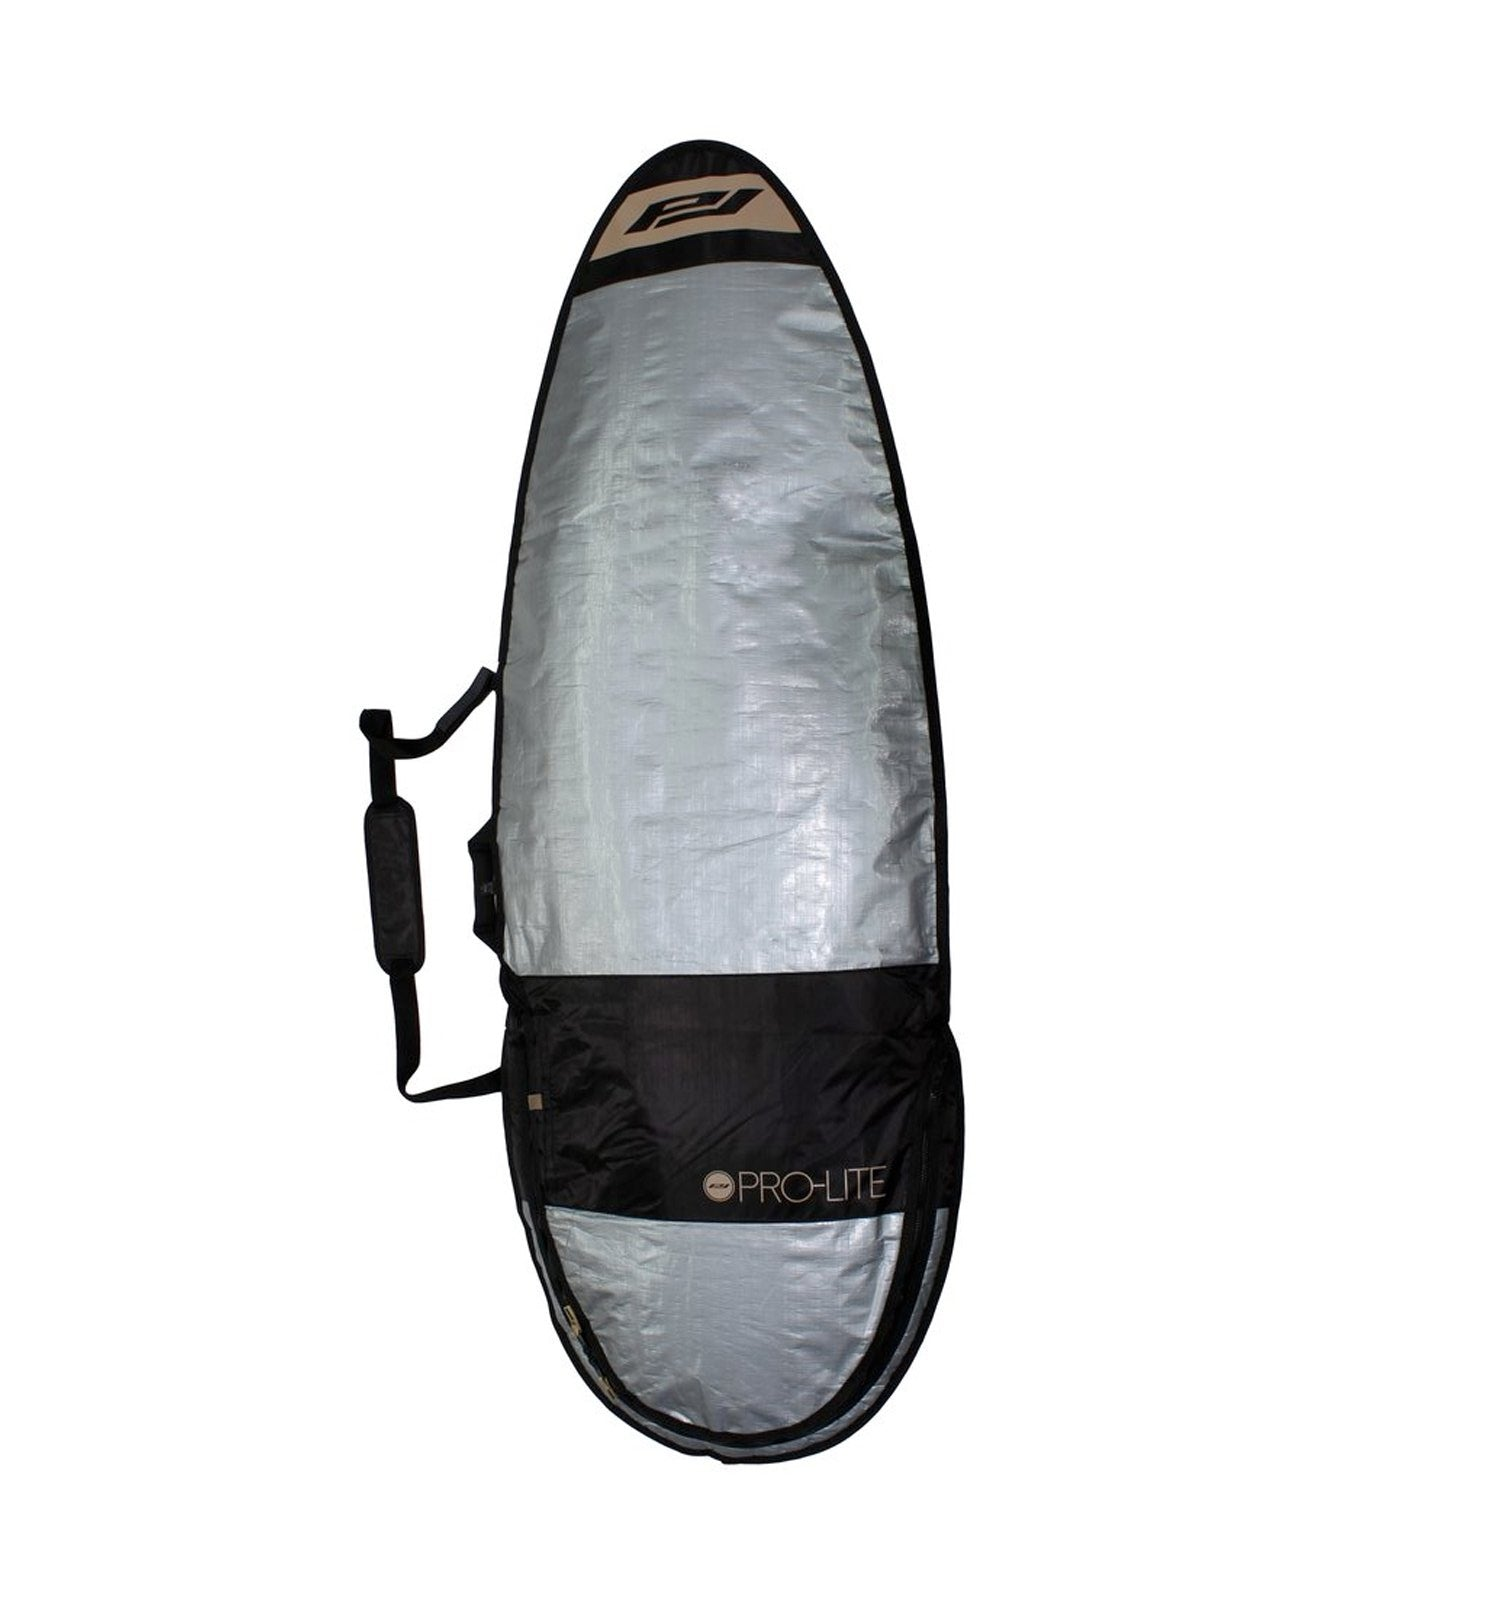 Pro-Lite Resession Day Surfboard Bag - Fish/Hybrid